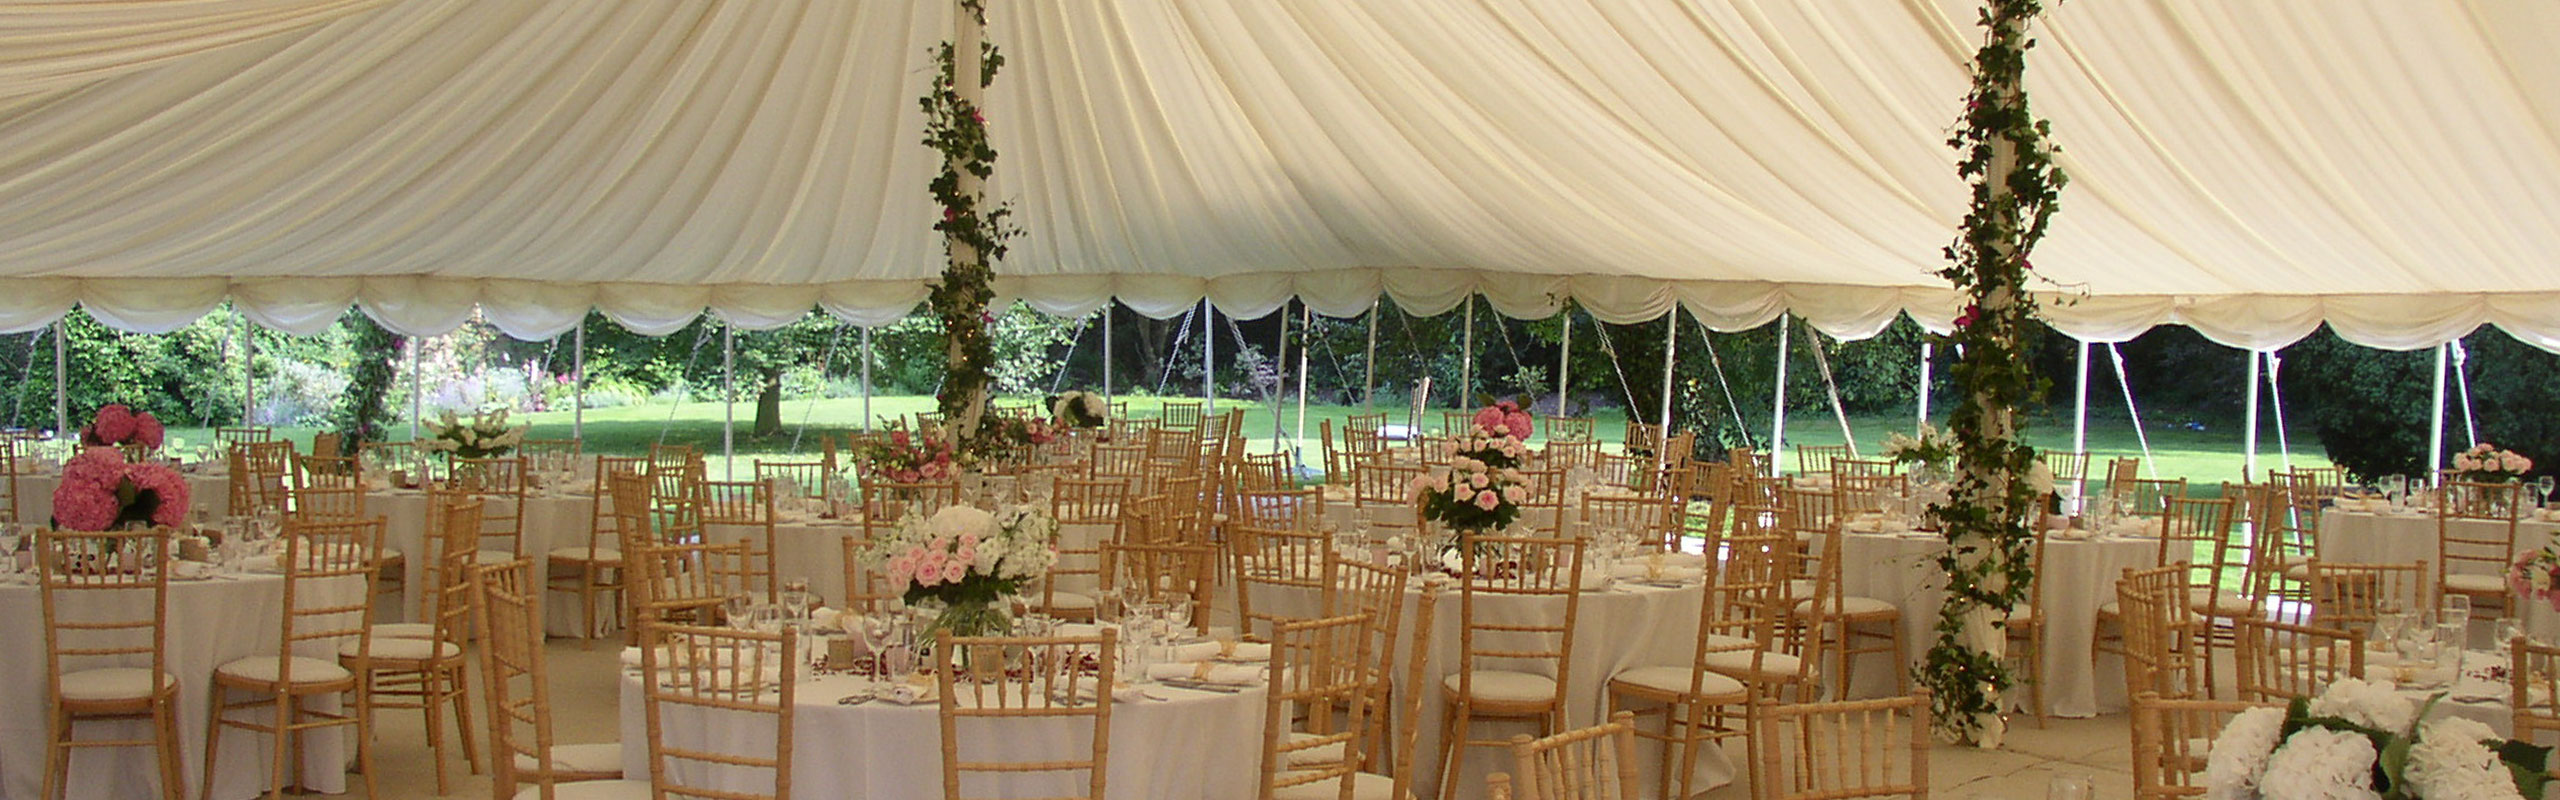 Wedding Marquee for Sale Large